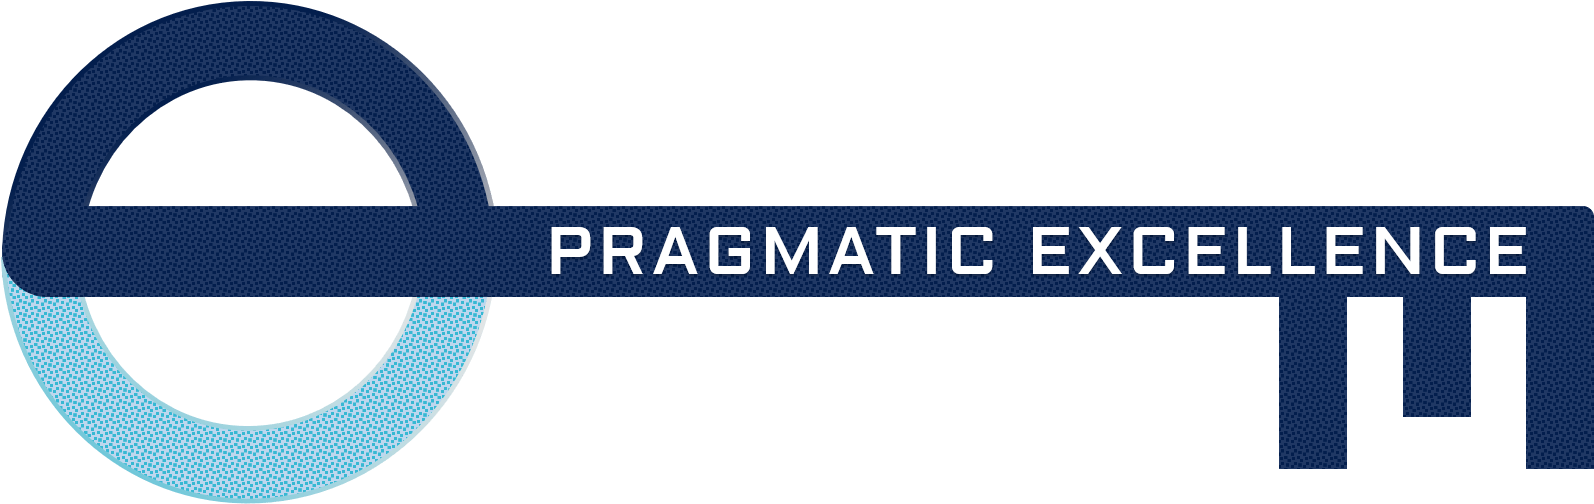 Pragmatic Excellence